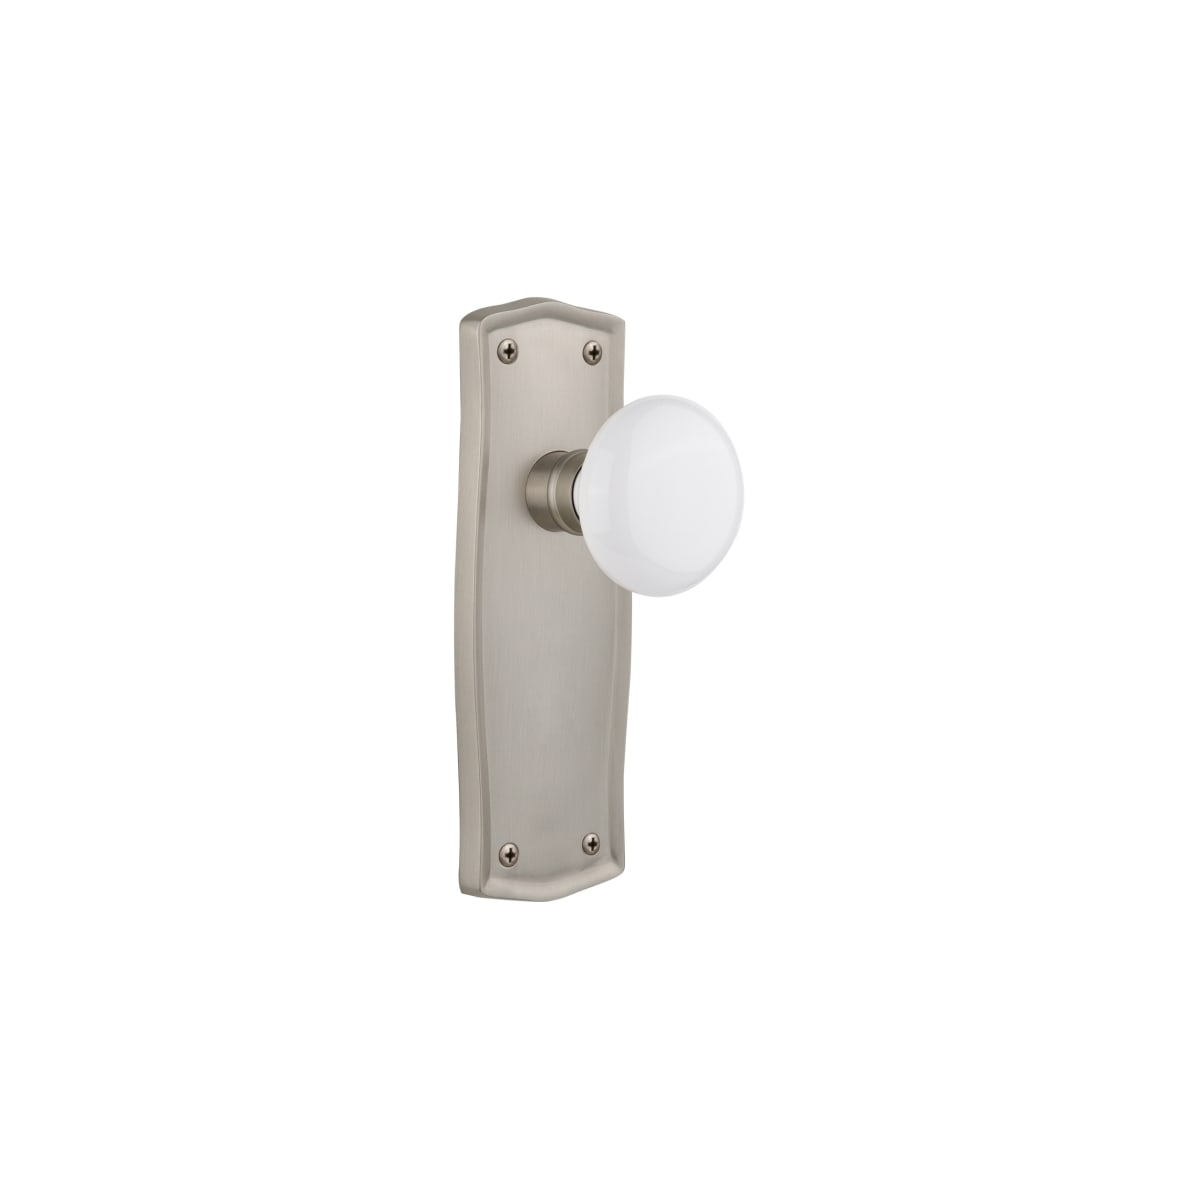 Nostalgic Warehouse 717574 Satin Nickel Vintage Farmhouse White Porcelain Privacy Door Knob Set With Solid Brass Backplate And 2 3 4 Backset Faucetdirect Com